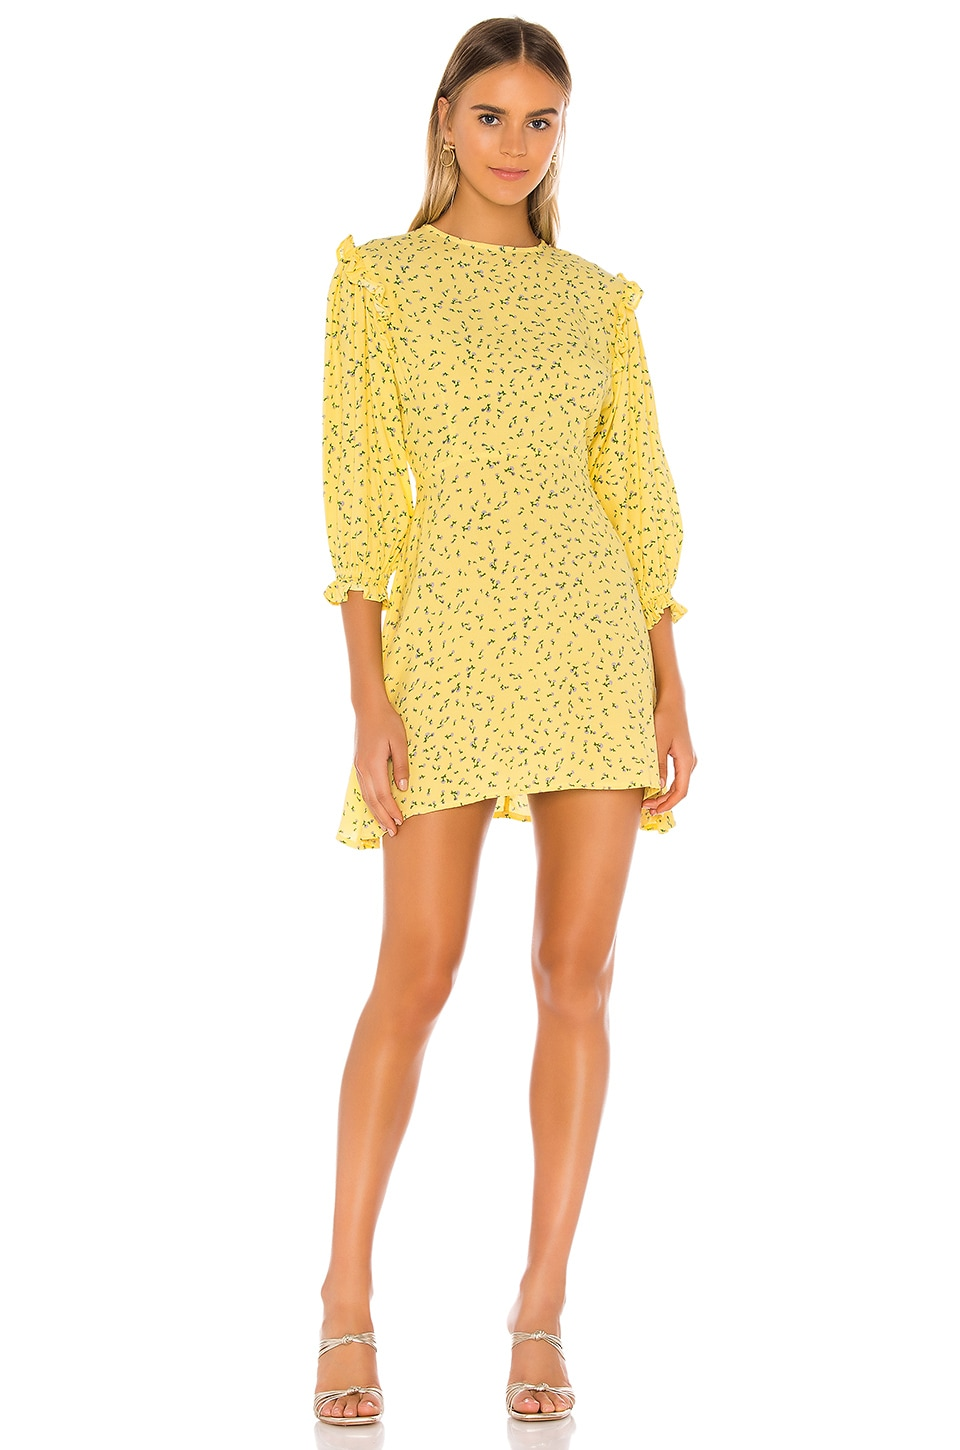 FAITHFULL THE BRAND Edwina Mini Dress in La Fica Floral